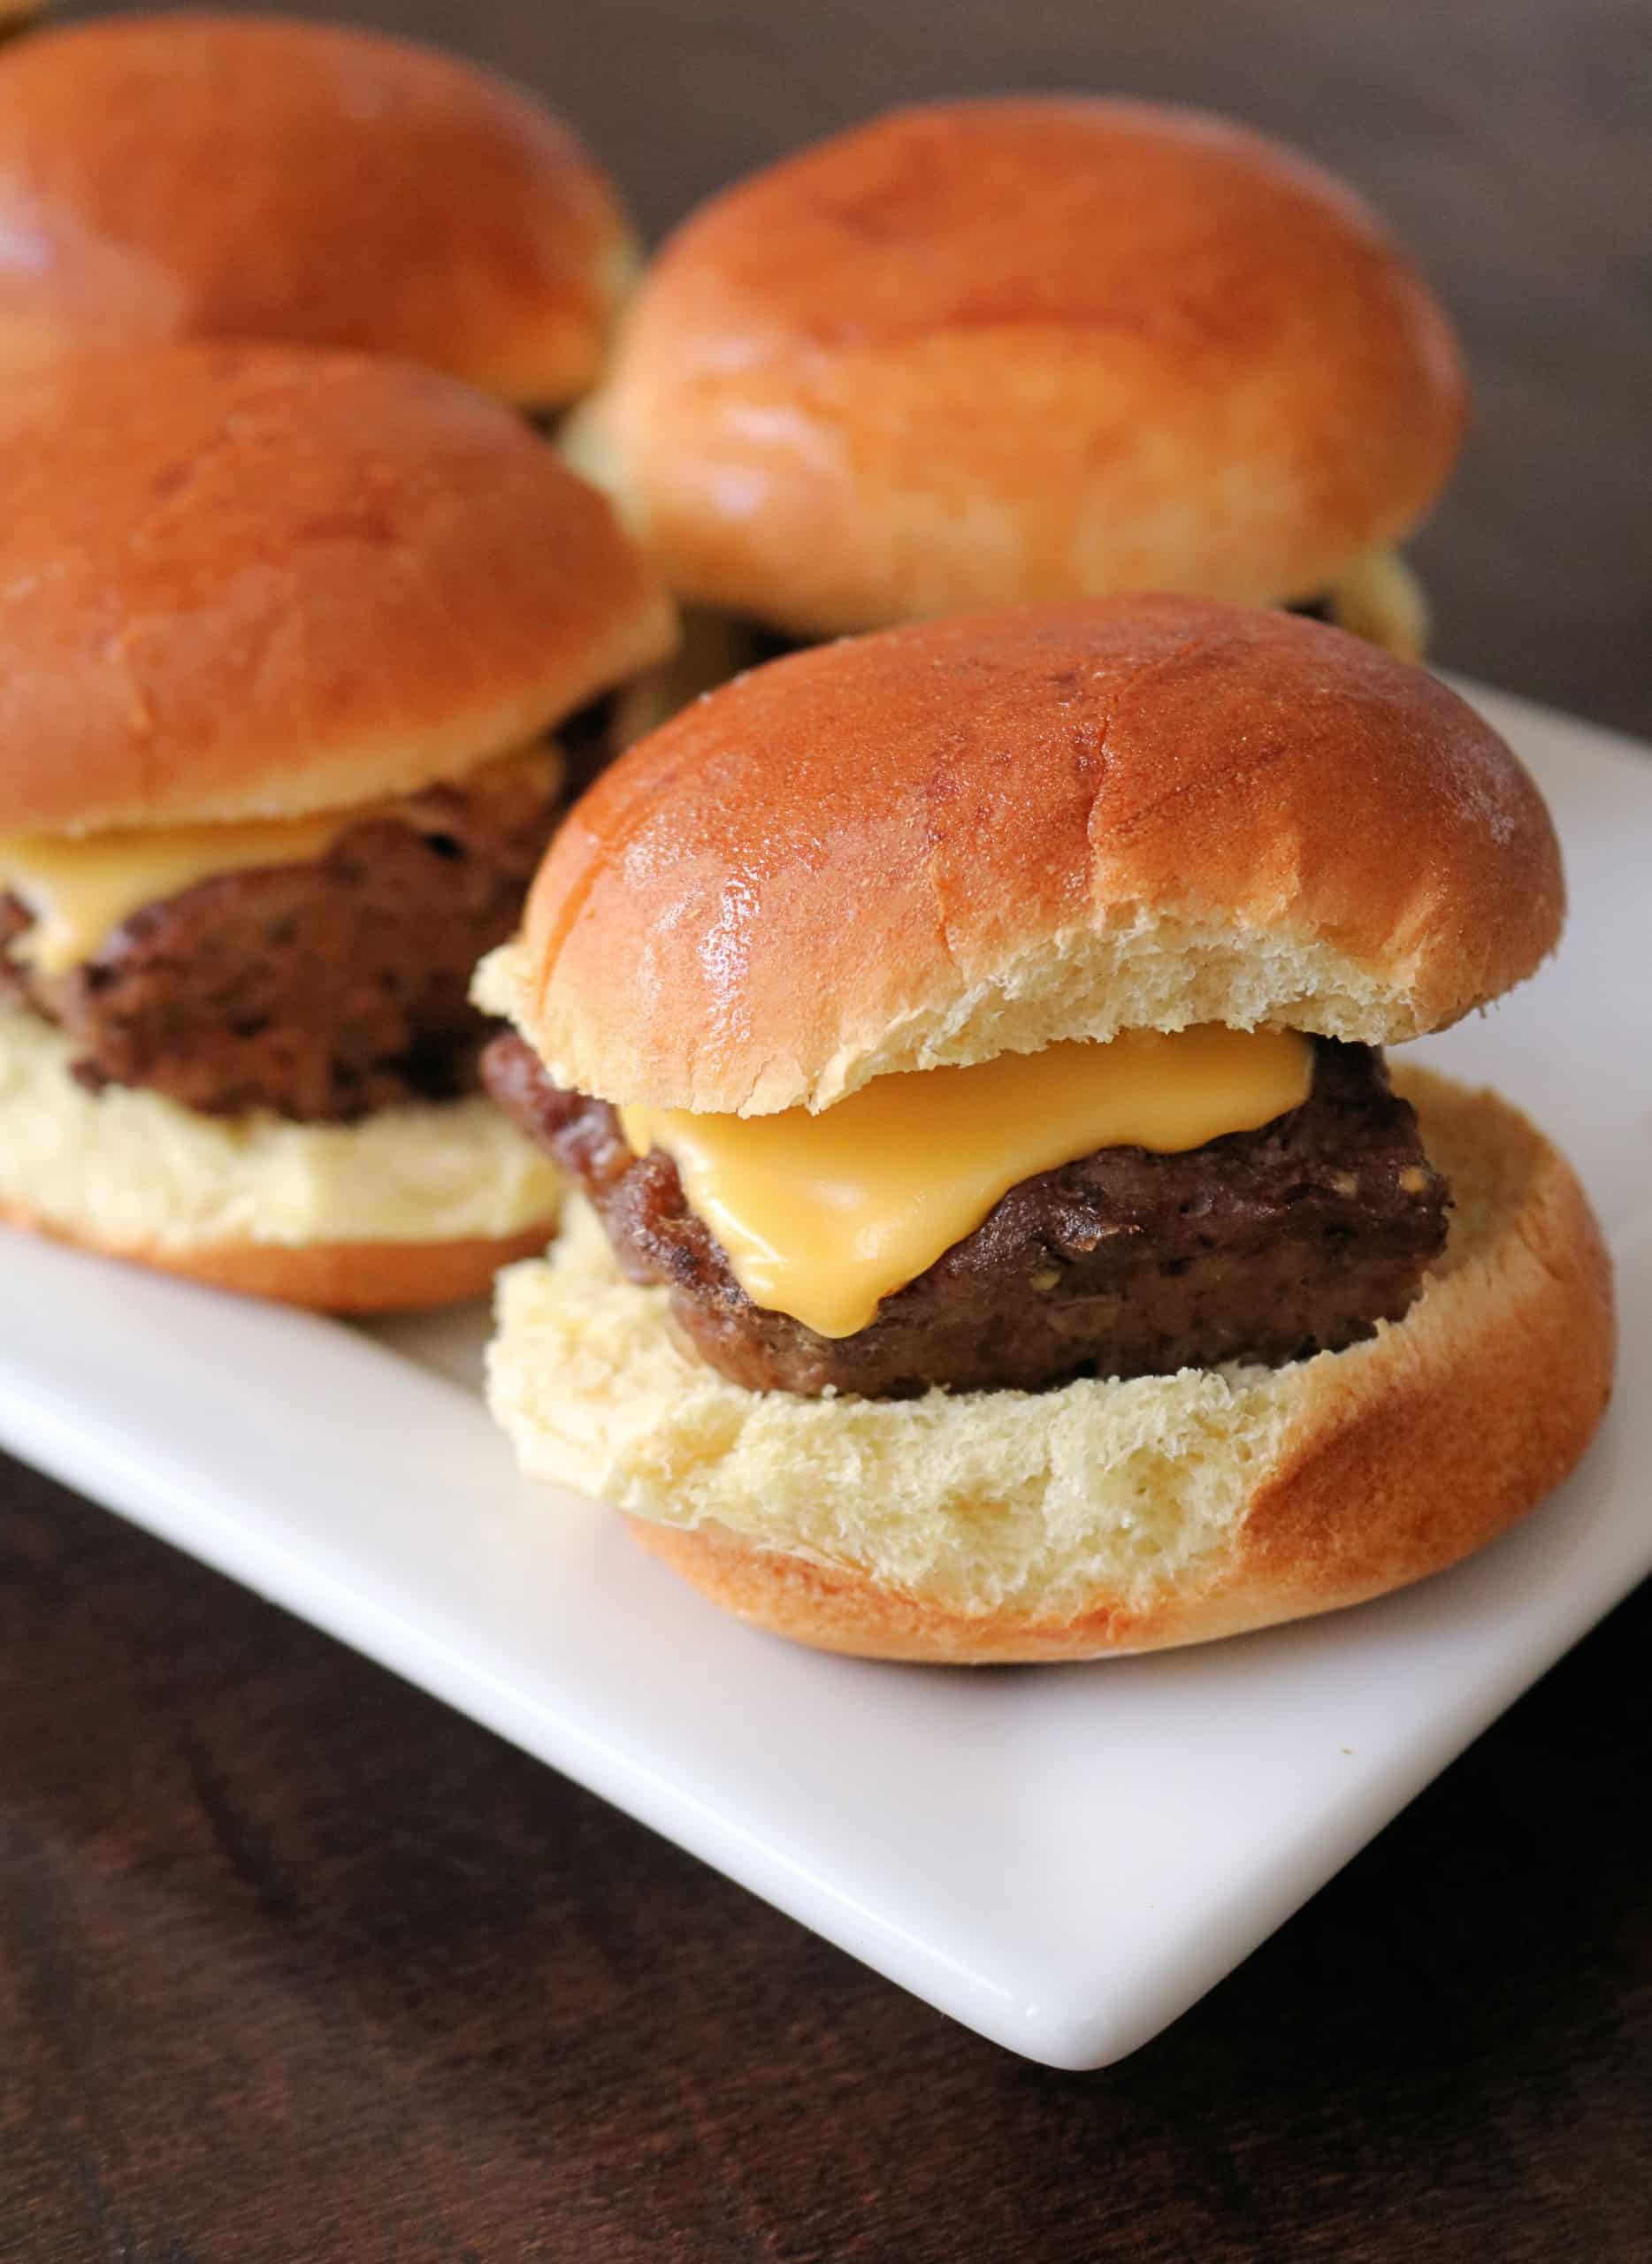 Grab some hamburger meat, dinner rolls, and cheese, and make these Delicious and Easy Cheeseburger Sliders for your next family dinner! They're juicy, flavorful, and oven baked on a sheet pan for quick and easy cheeseburgers for a crowd or party! #cheeseburgersliders #sliders #cheeseburgers #easydinner